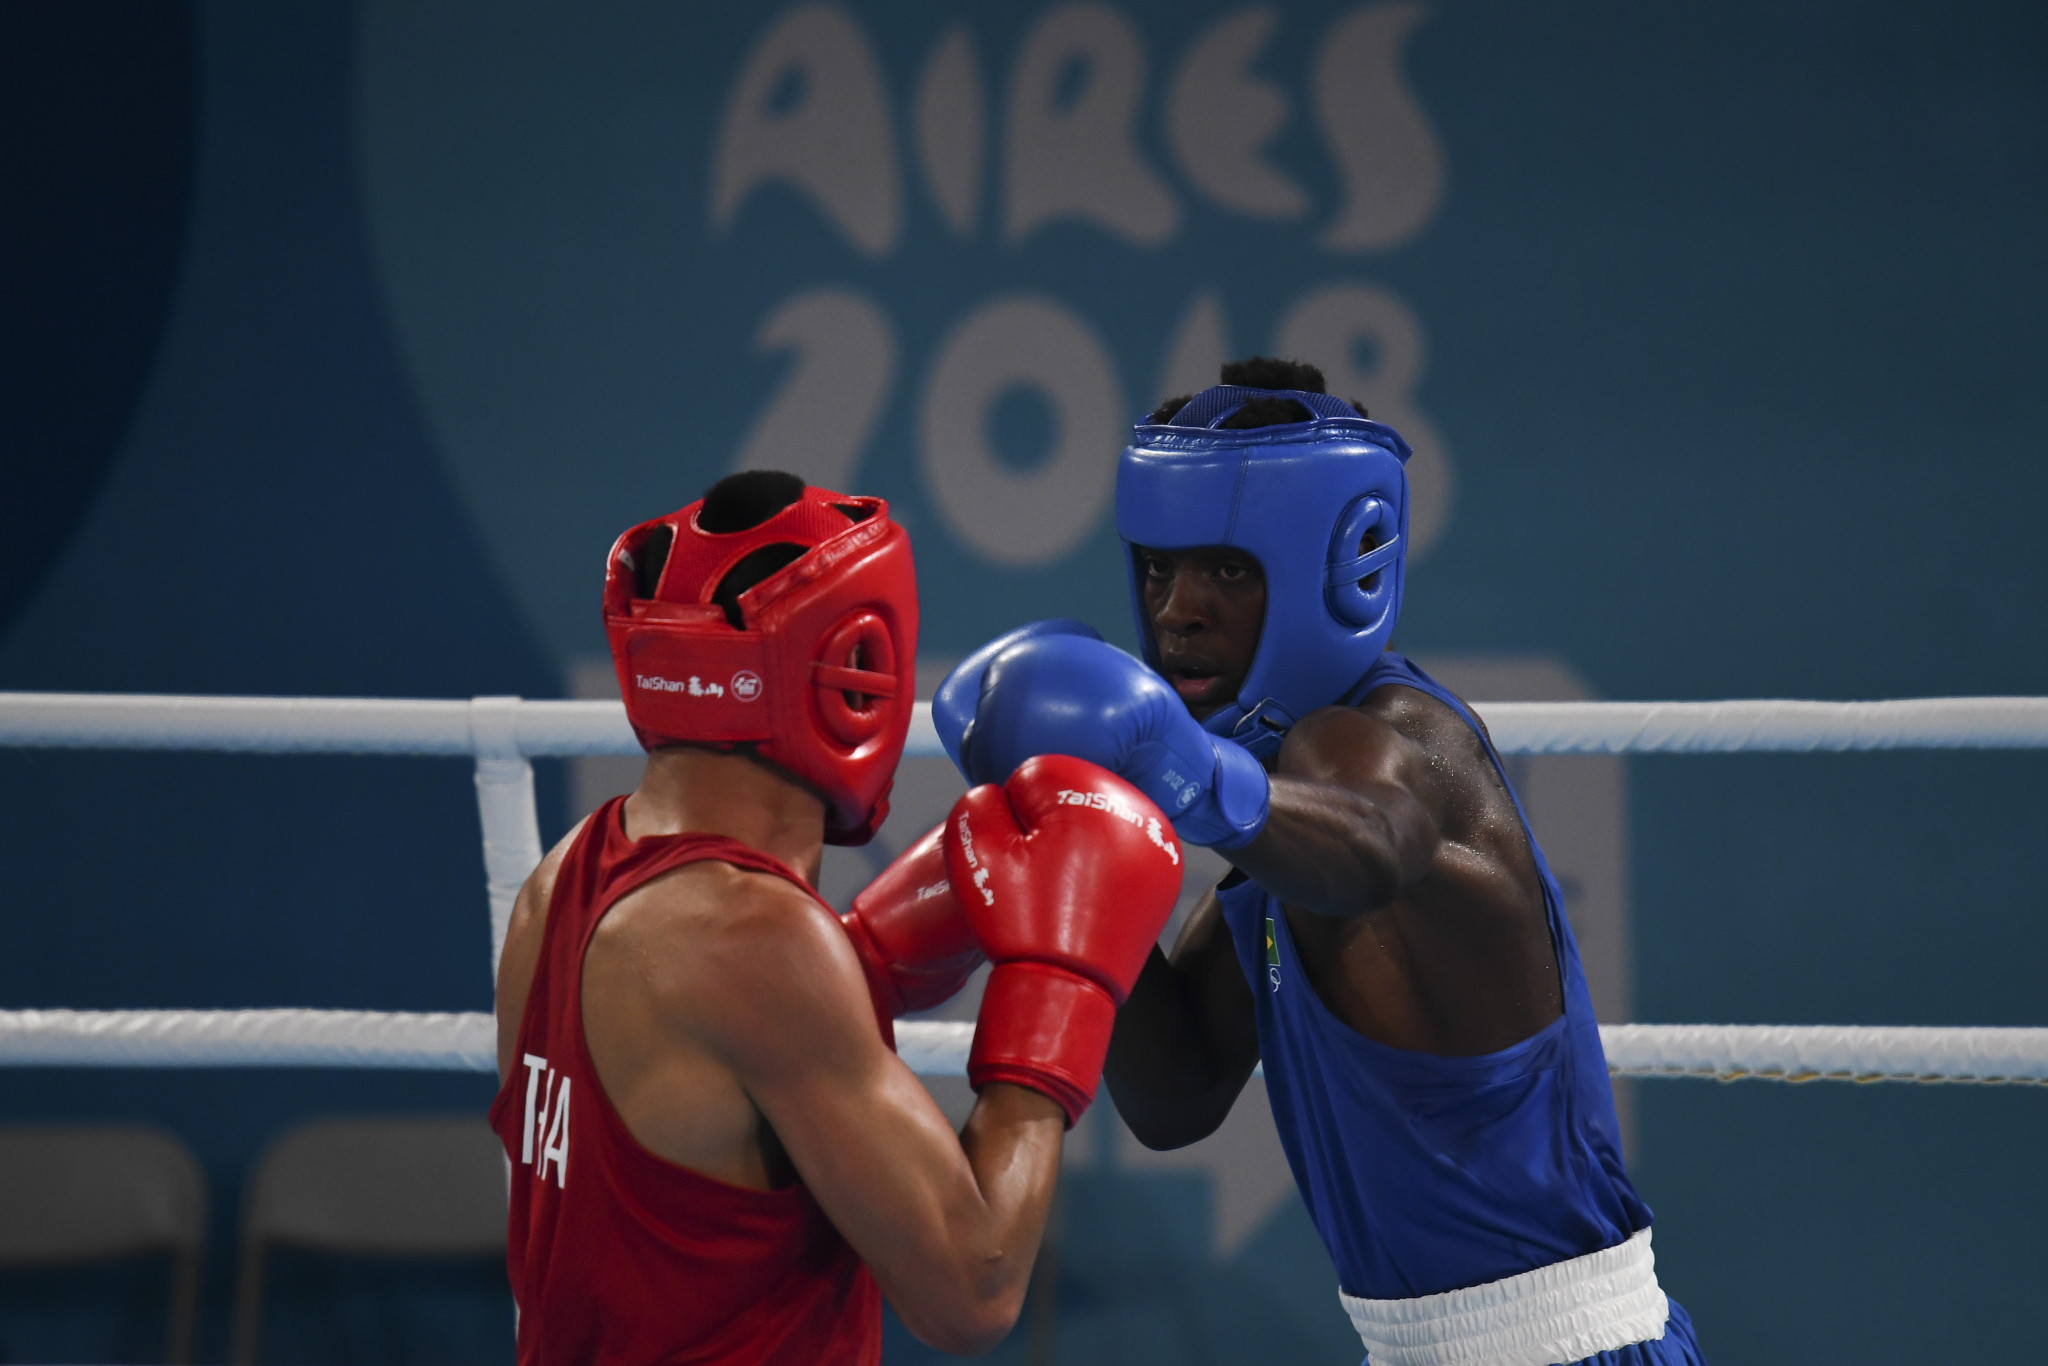 Boxing at Buenos Aires 2018 has been conducted with